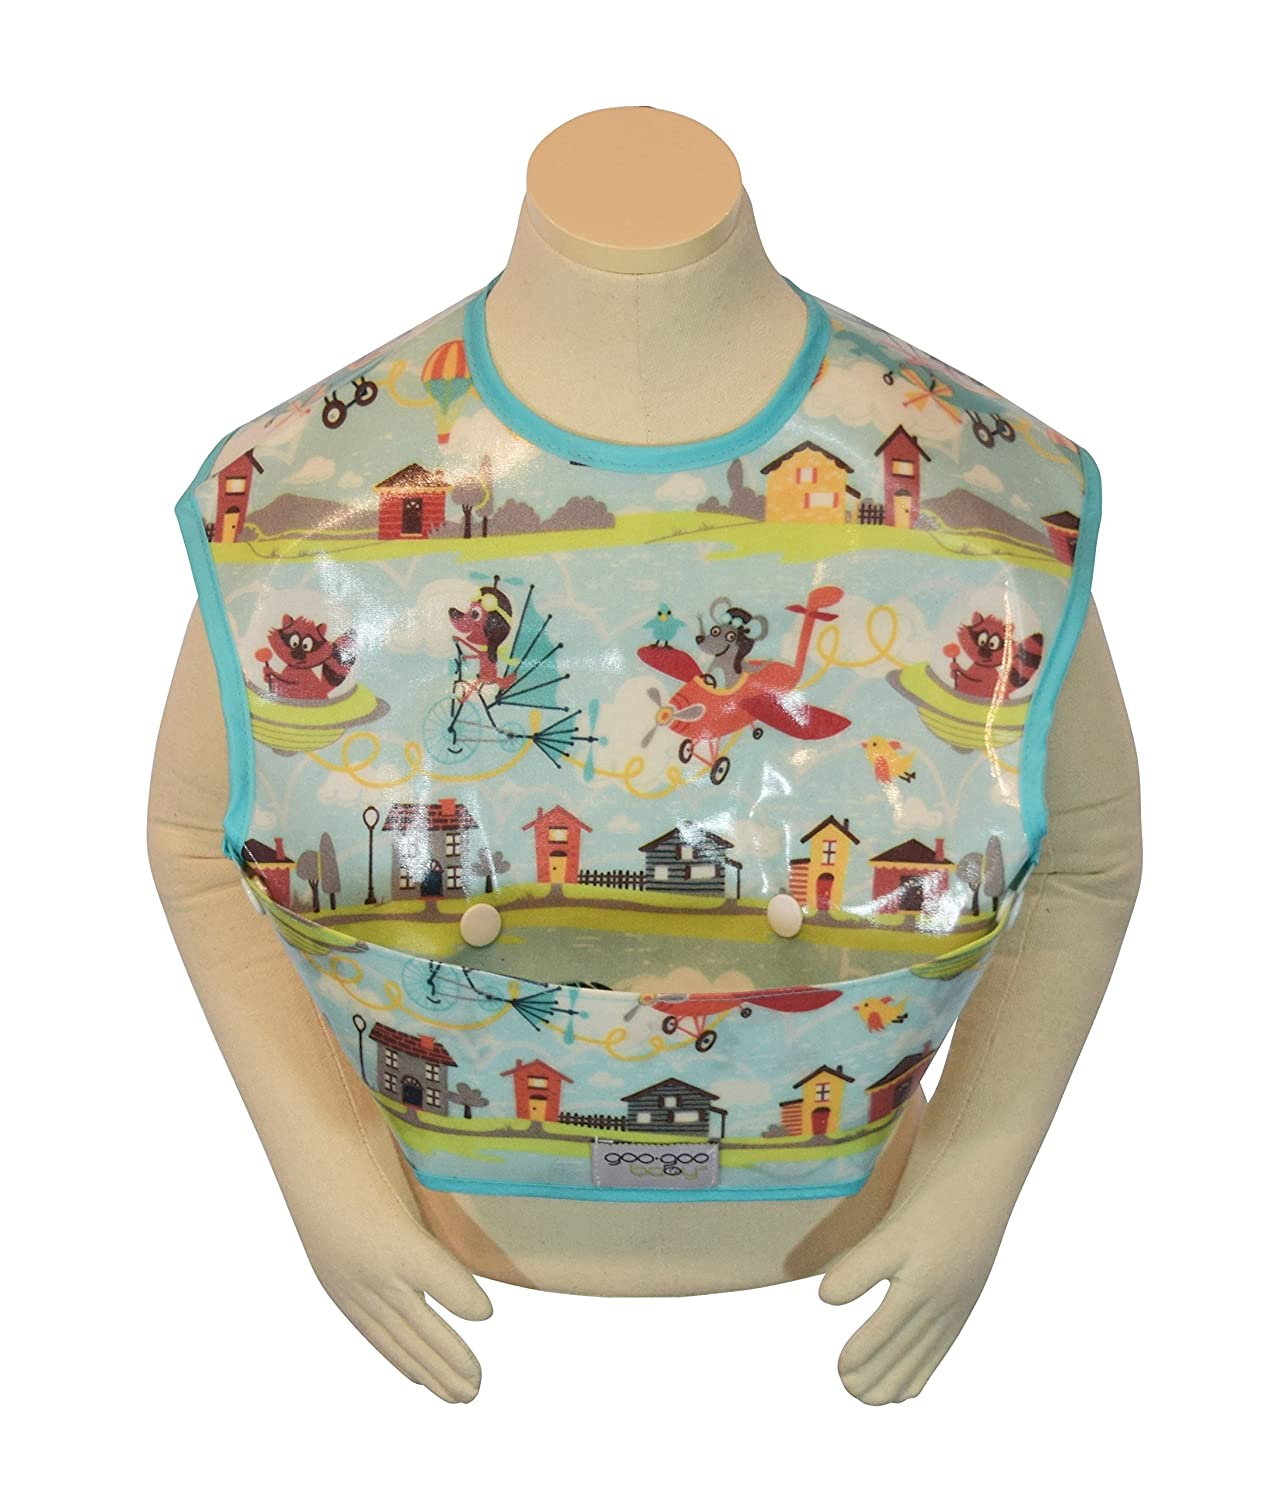 Goo-Goo Baby Perfect Pocket Bib, Multi, Aviator, Large PPB-AVIATOR-L